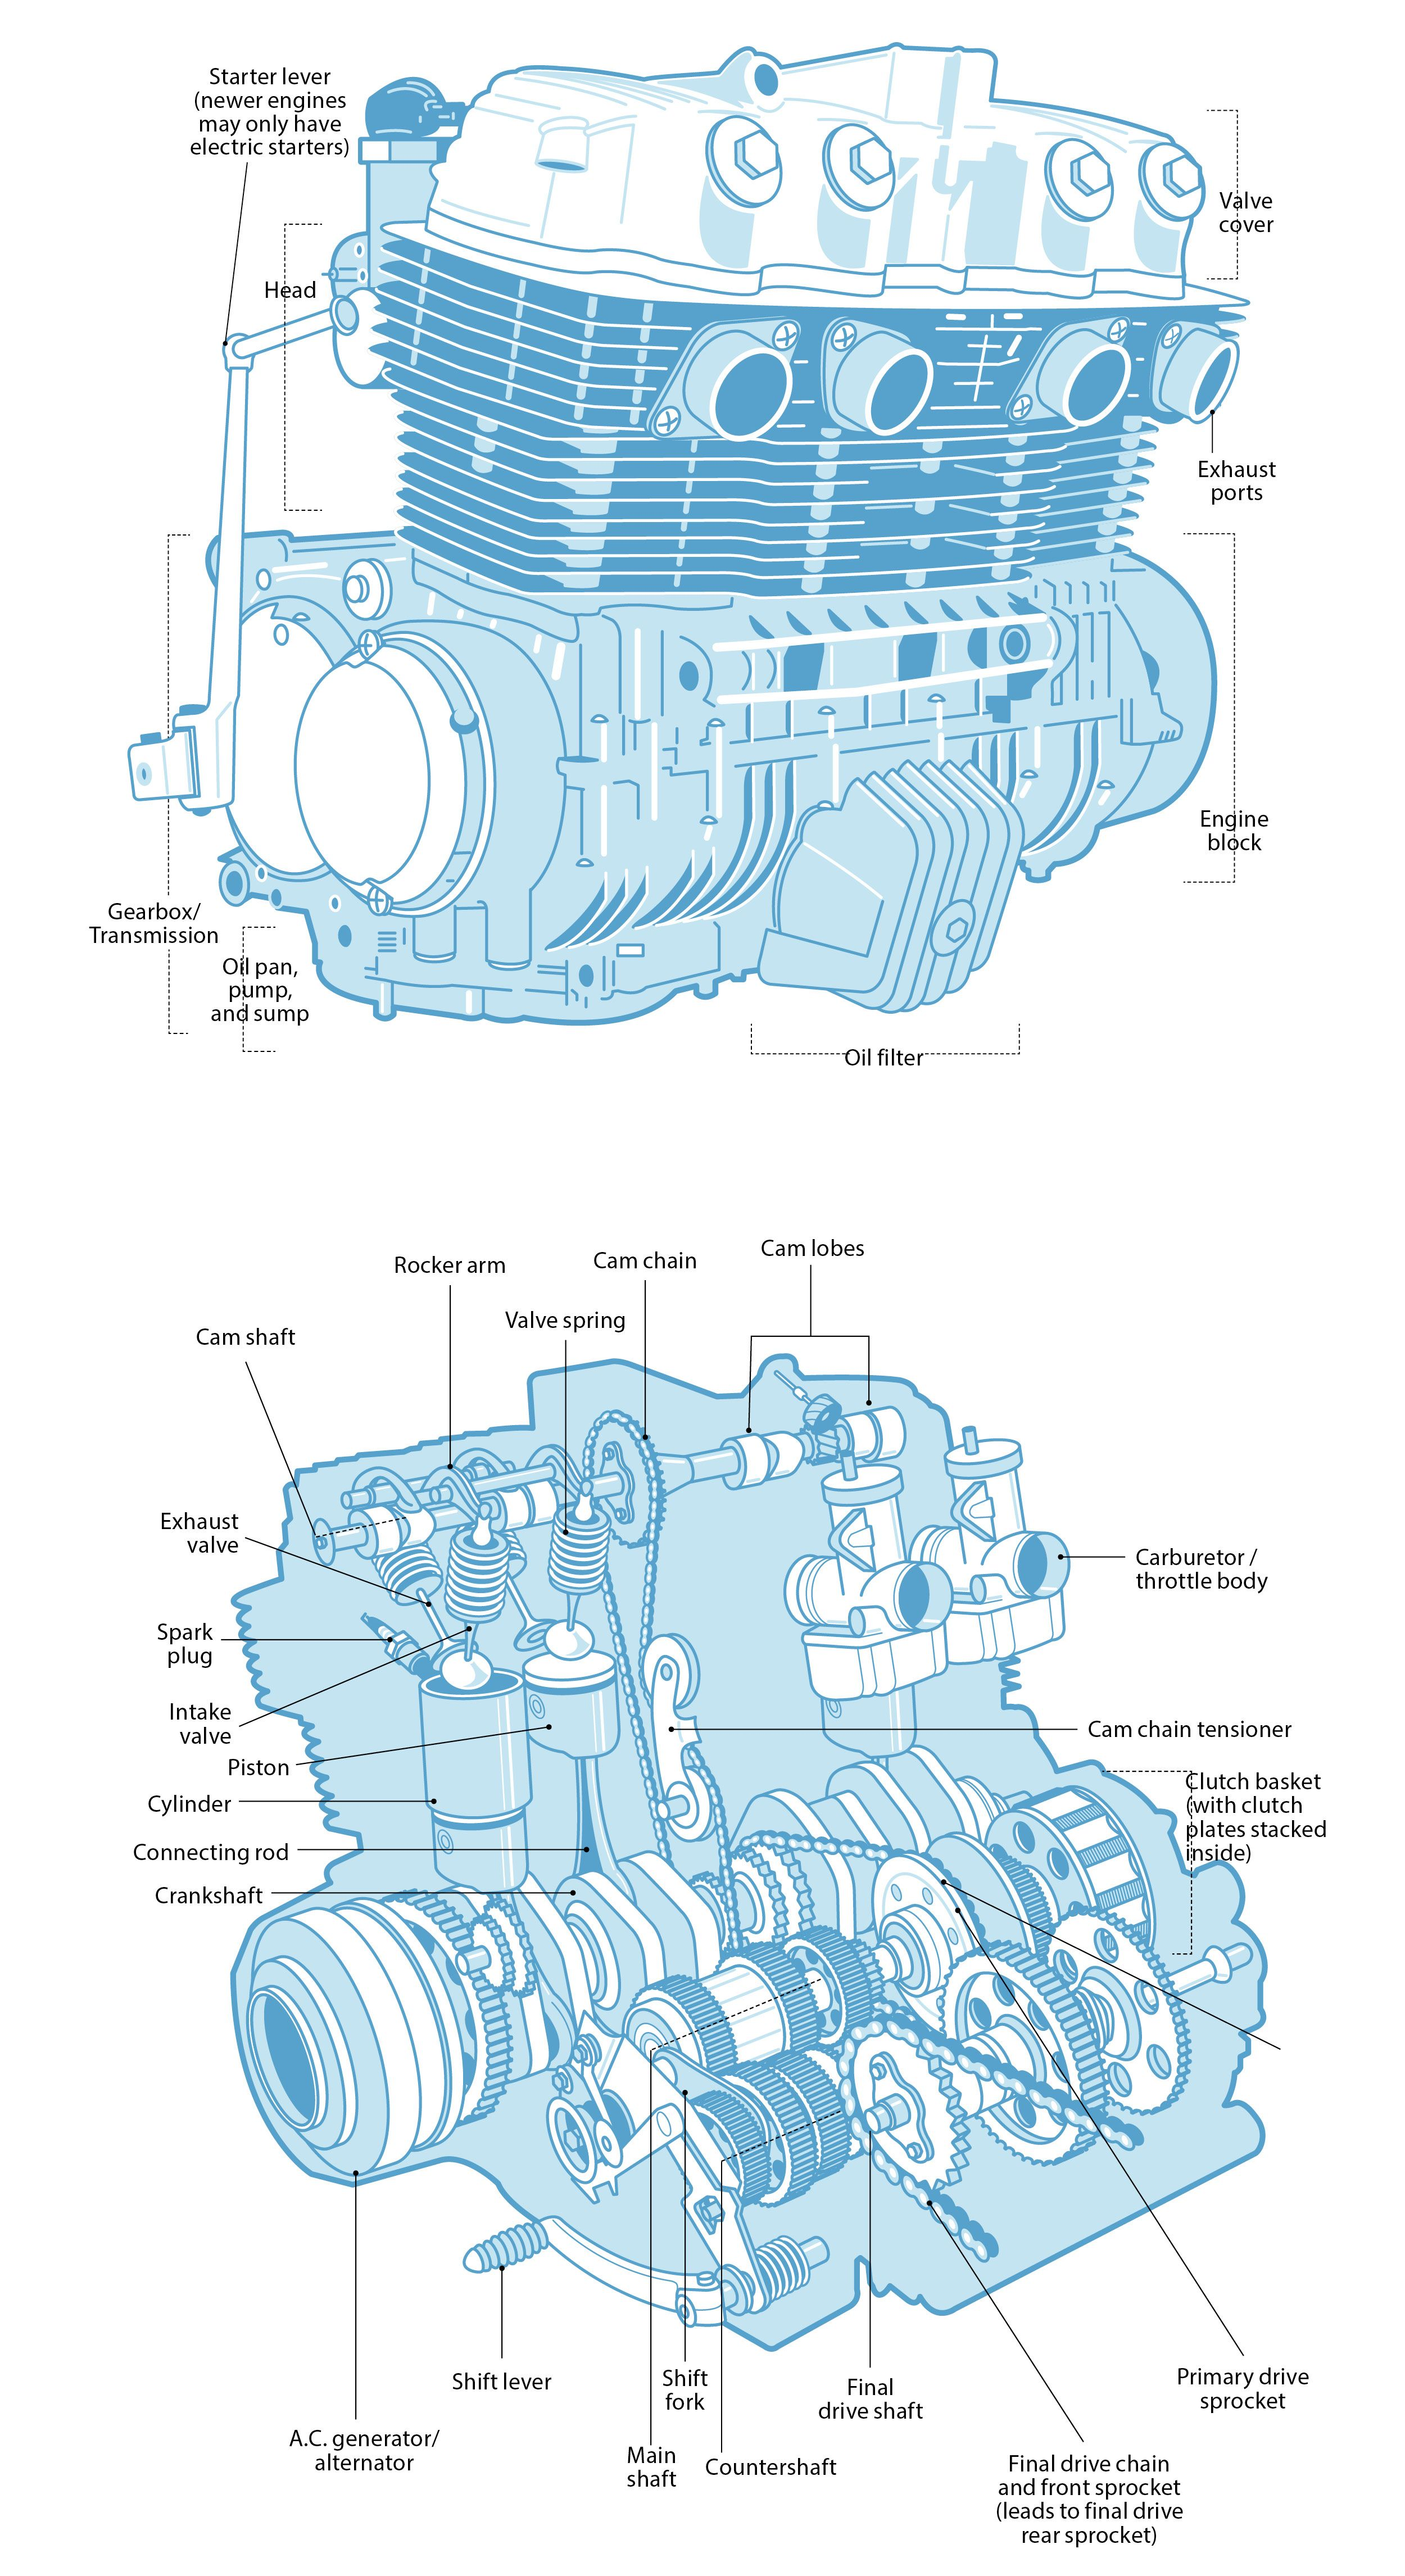 small resolution of understand engine anatomy tip 262 from the pages of the total motorcycling manual